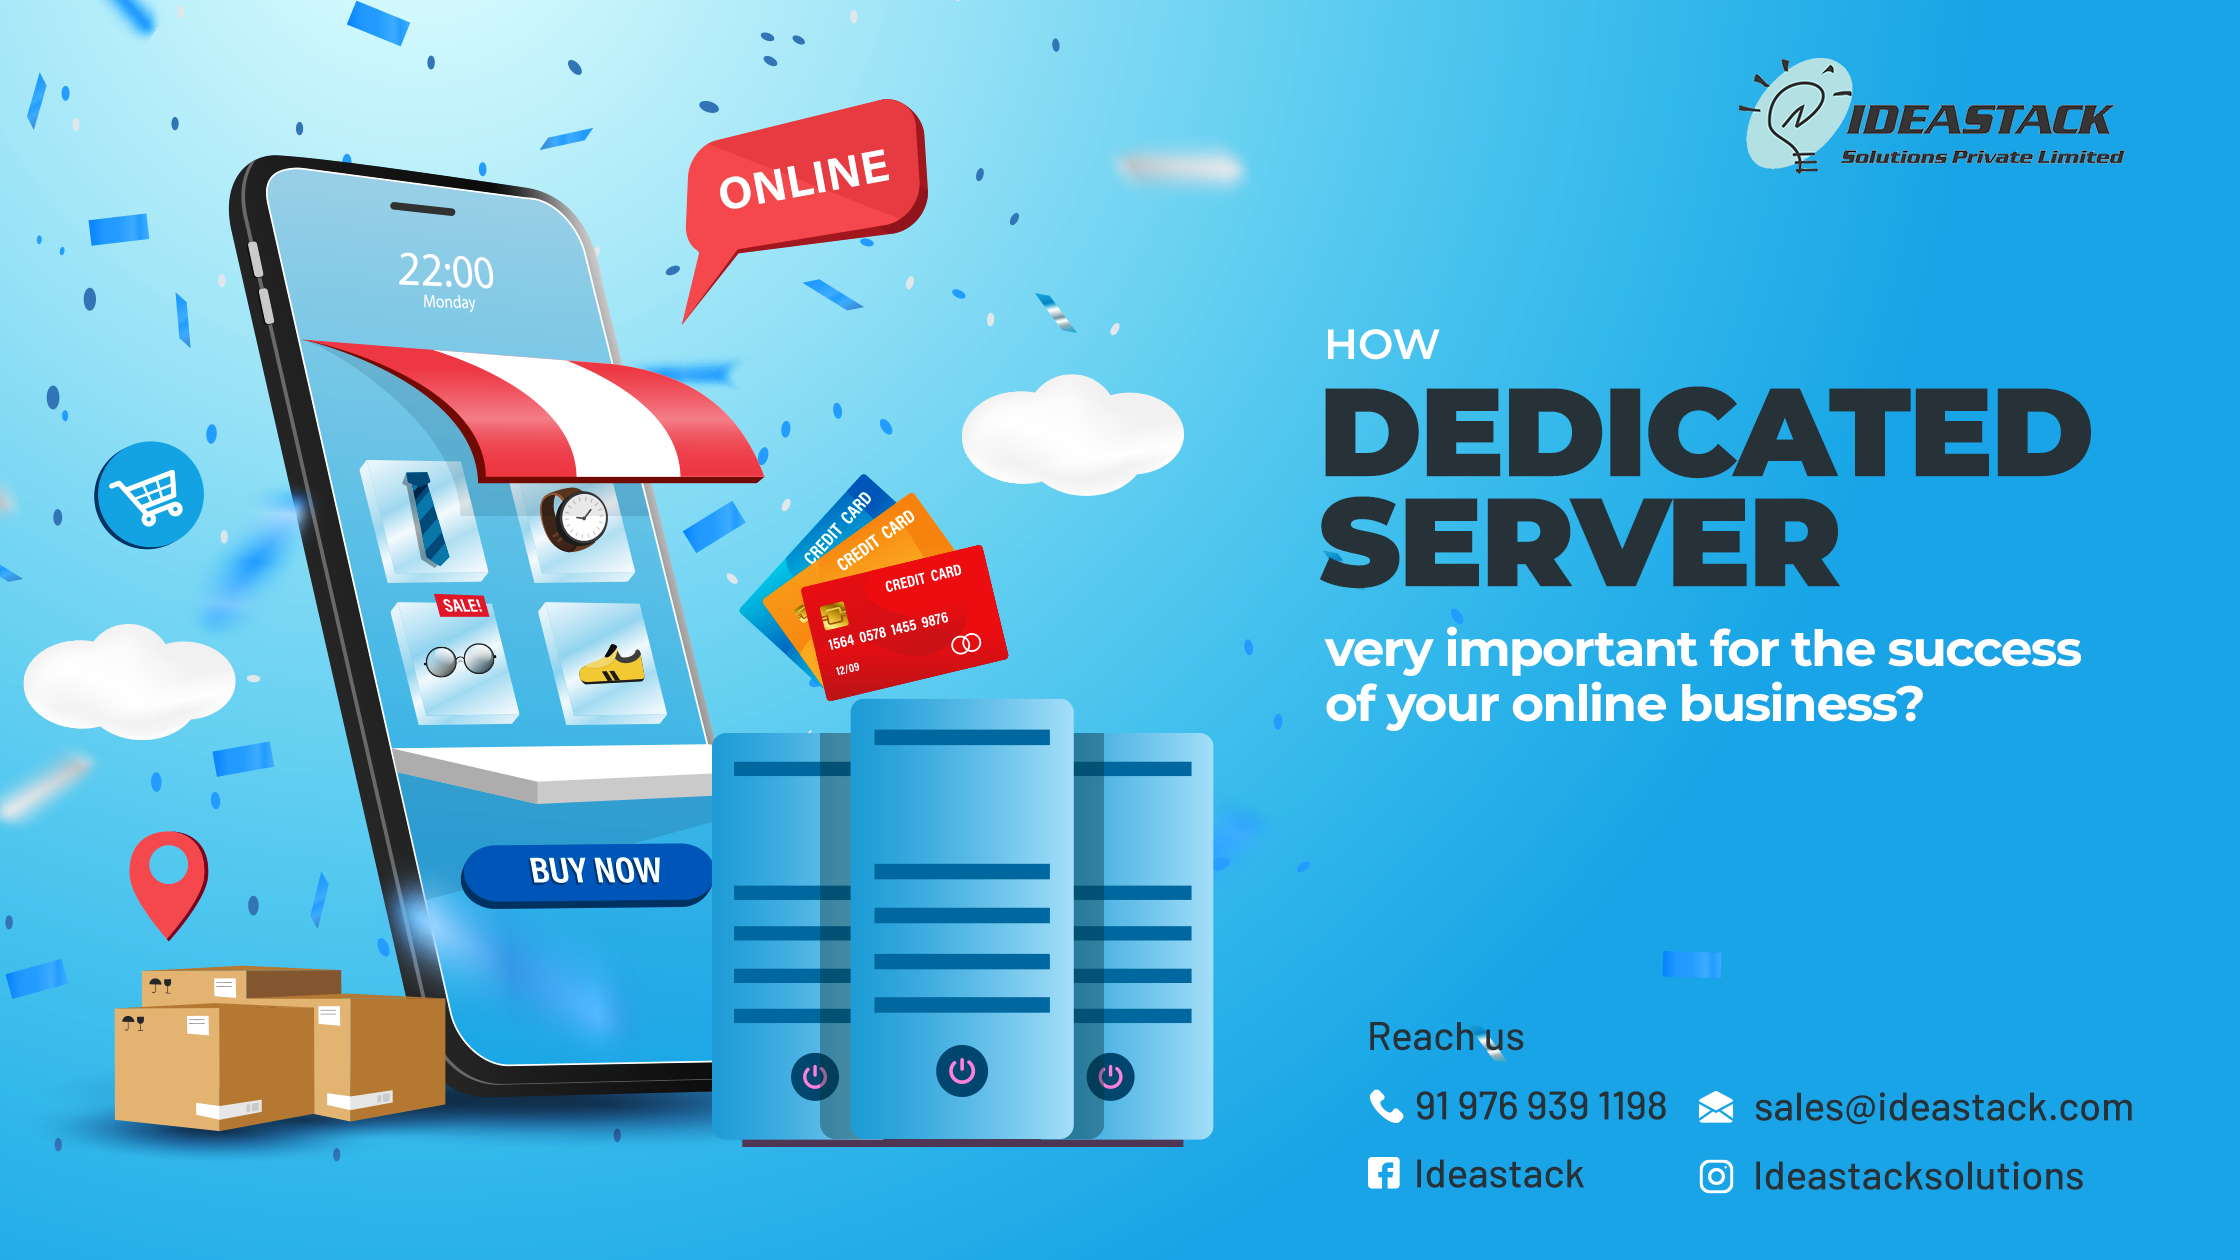 How Is Dedicated Server Very Important For The Success Of Your Online Business?